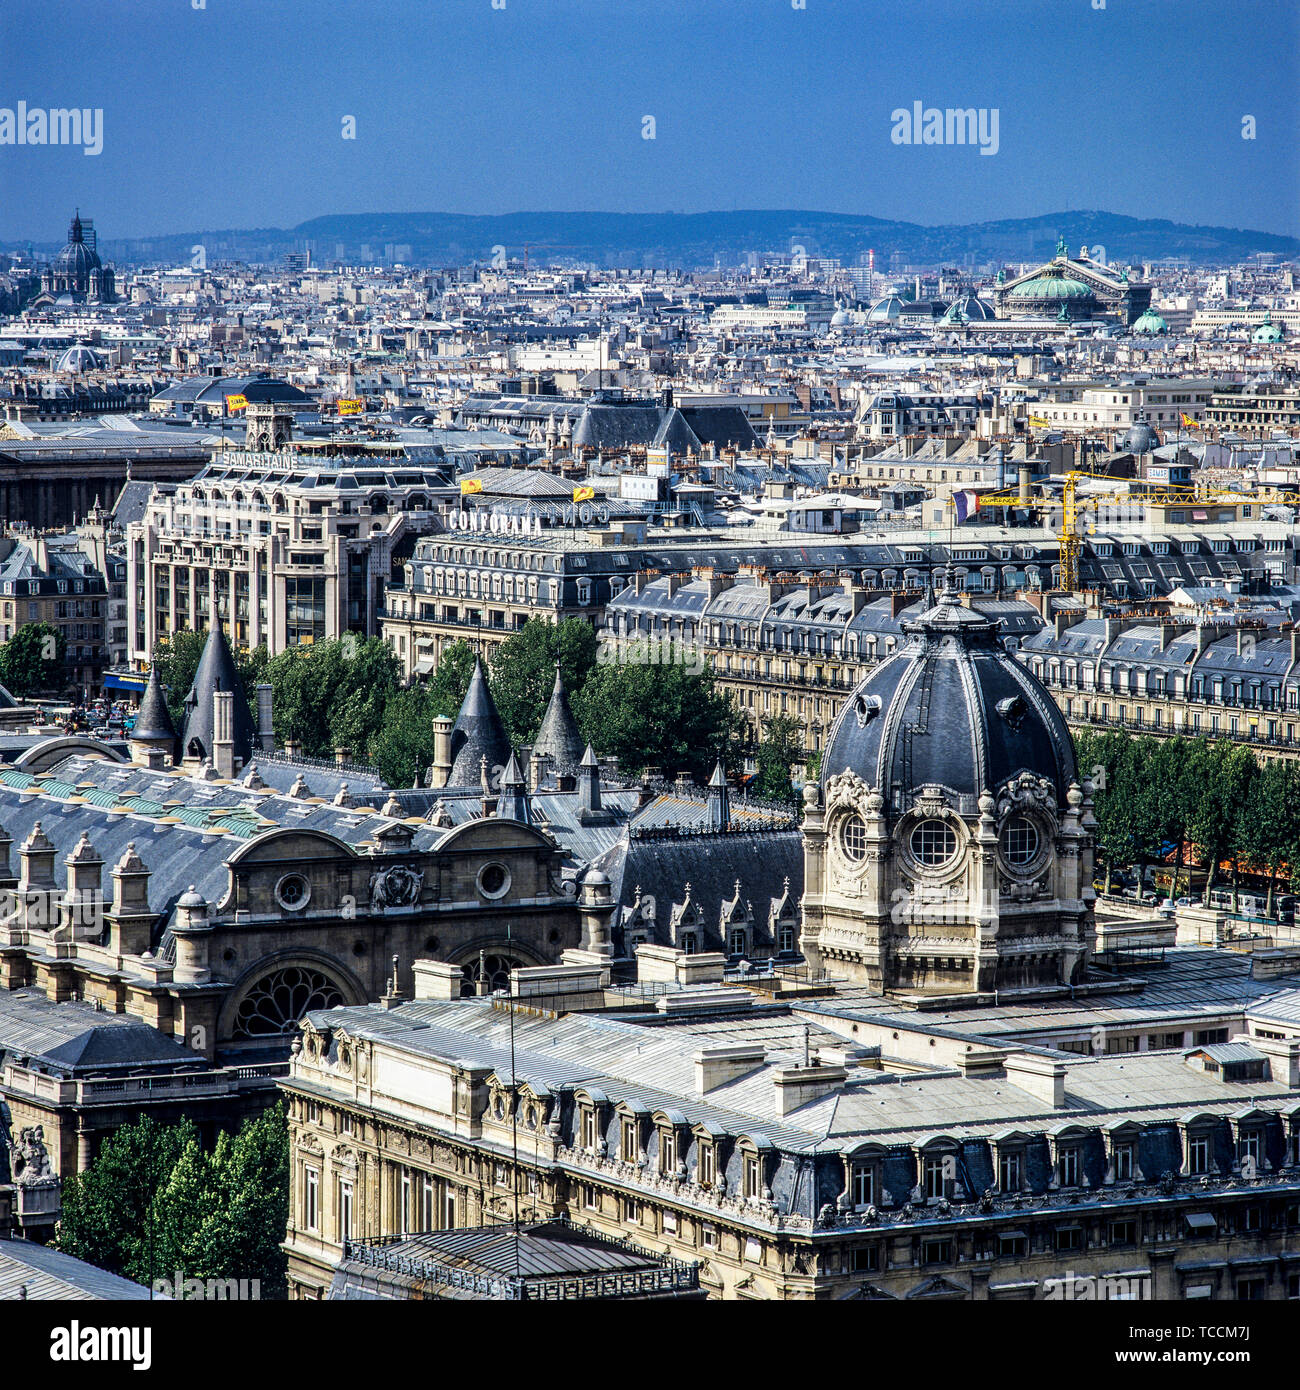 Overview of the city from Notre-Dame de Paris cathedral, Hotel Dieu hospital, Paris, France, Europe, Stock Photo